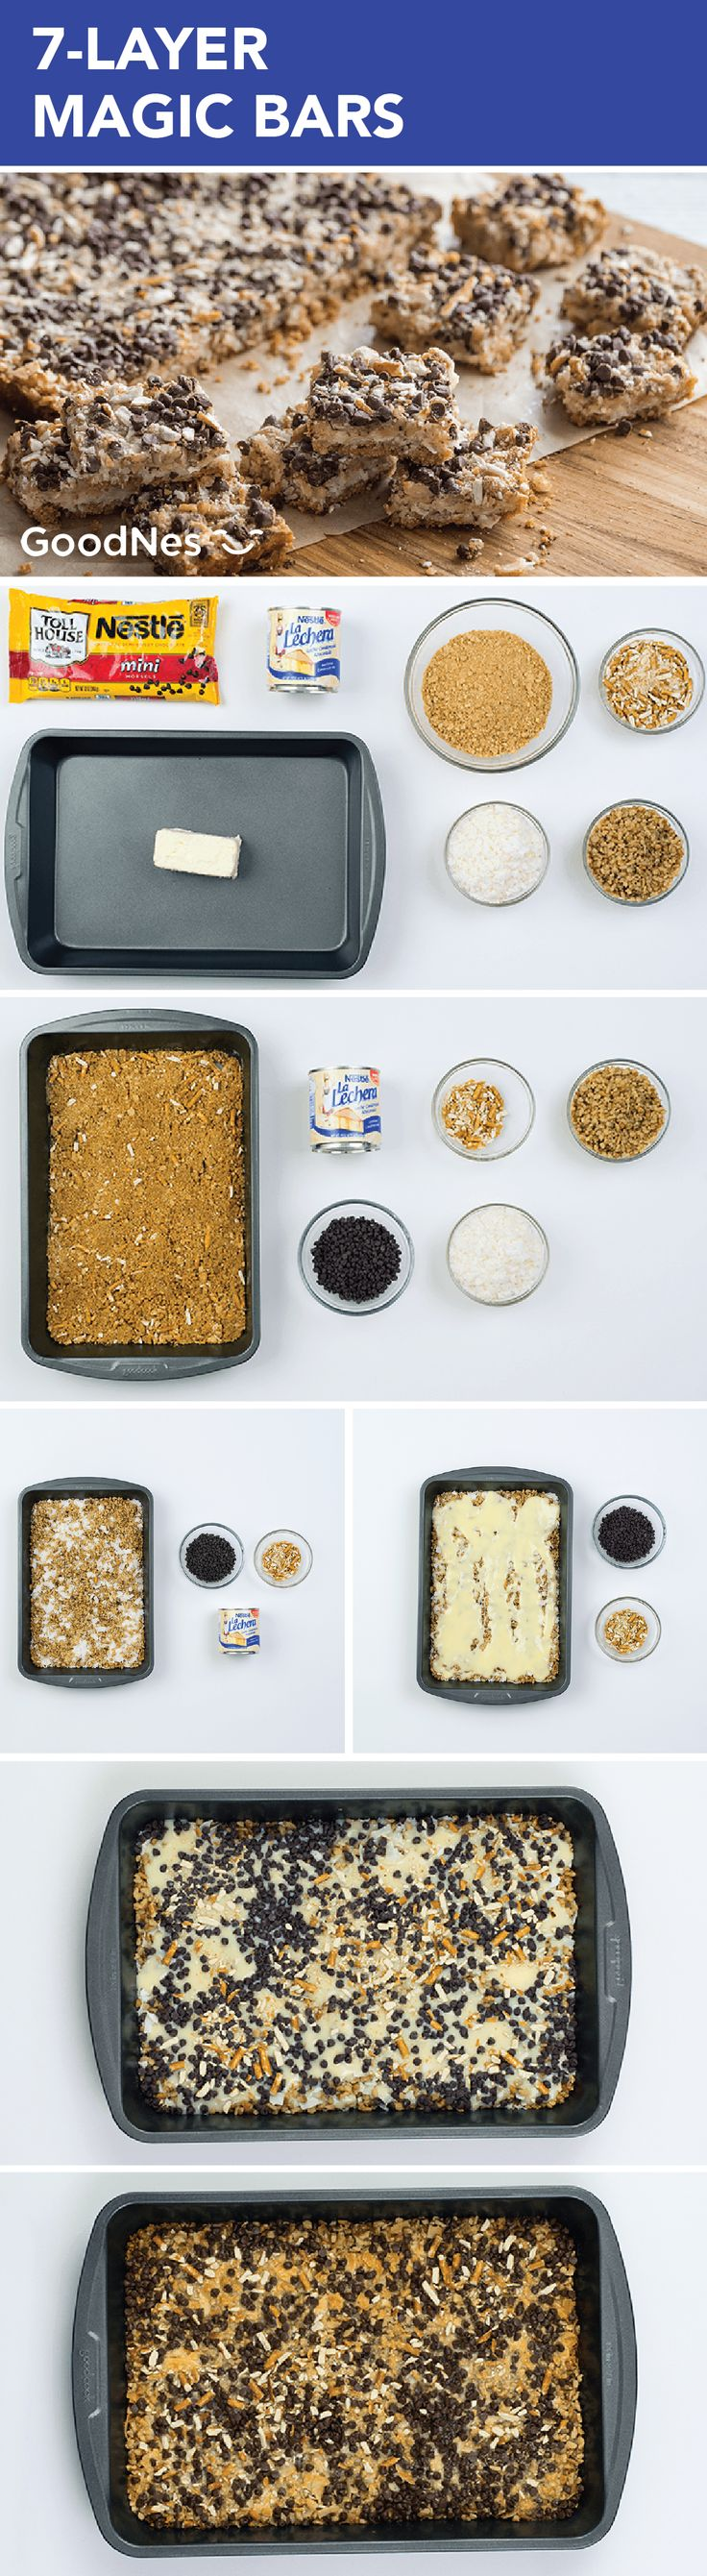 Made with Nestlé® Toll House® Semi-Sweet Chocolate Mini Morsels, Nestlé® La Lechera® Sweetened Condensed Milk, coconut, nuts, pretzels and graham cracker crumbs, this flavorful snack recipe for 7-Layer Magic Bars is great for sharing with coworkers in the office.